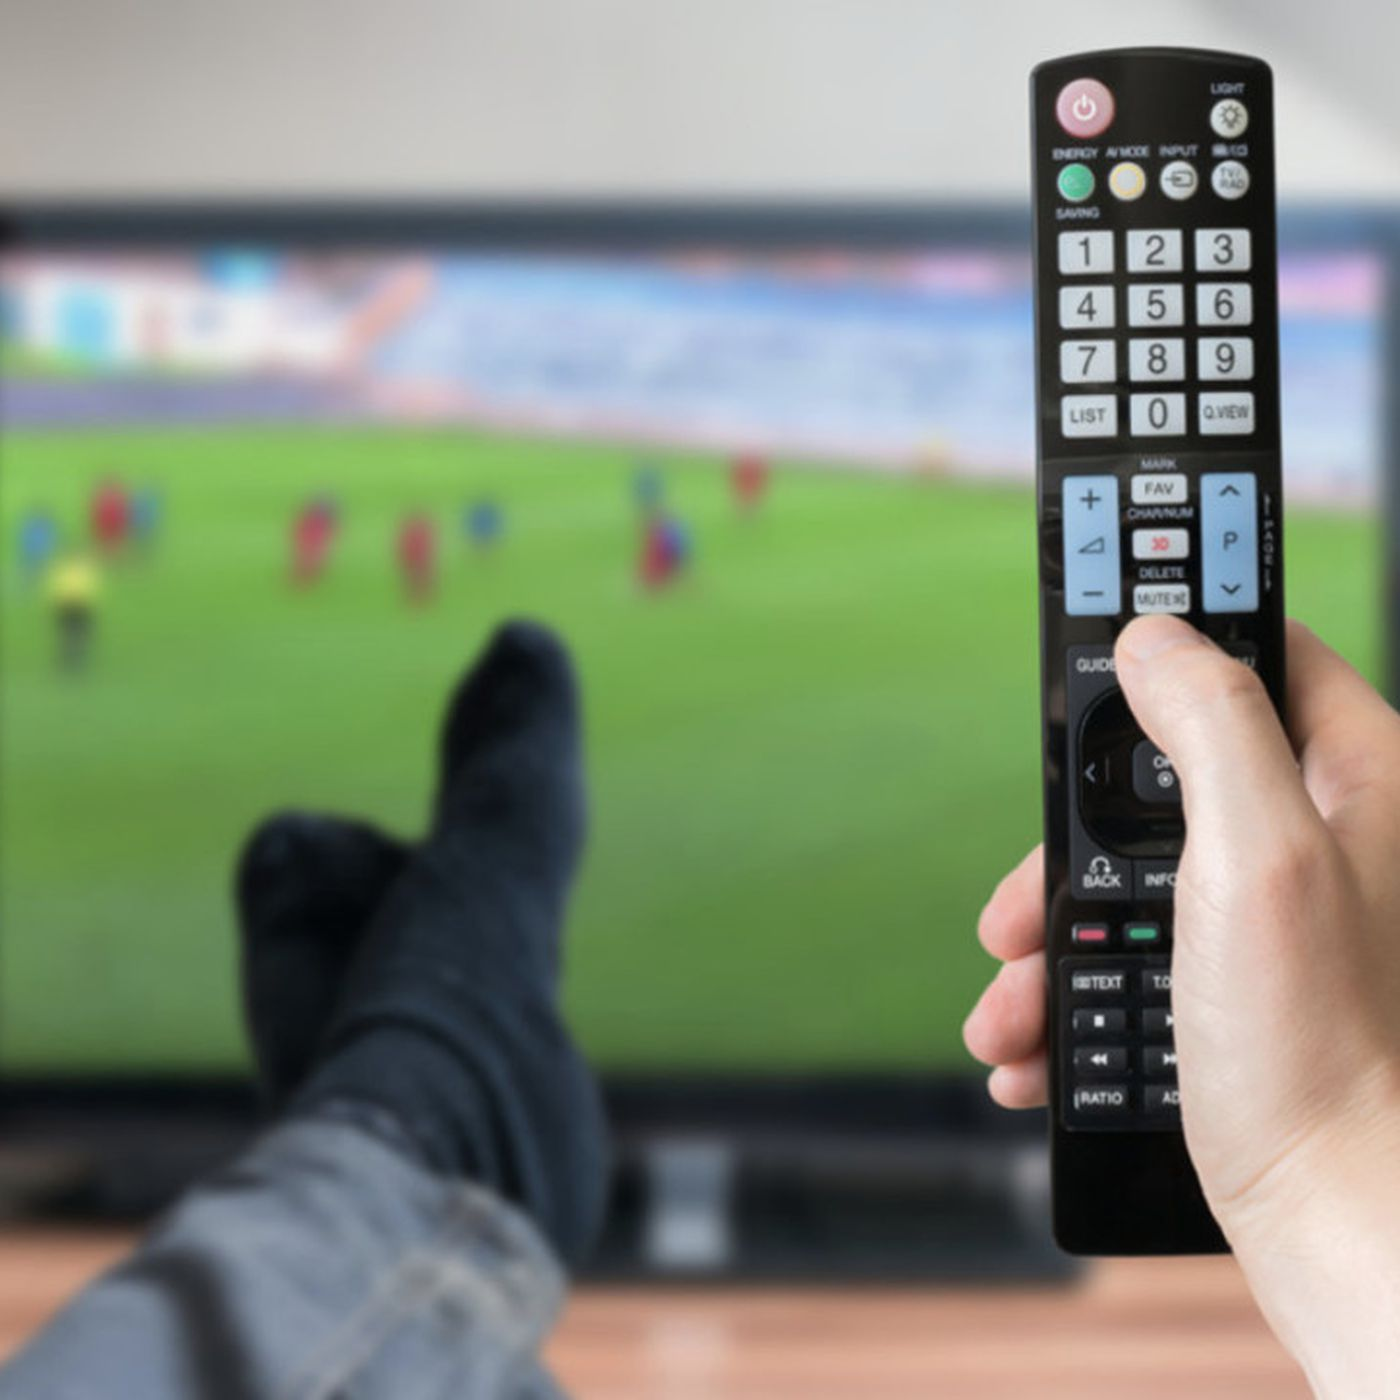 Sports on the air: Here's what games are on TV and radio for the week of June 20-26